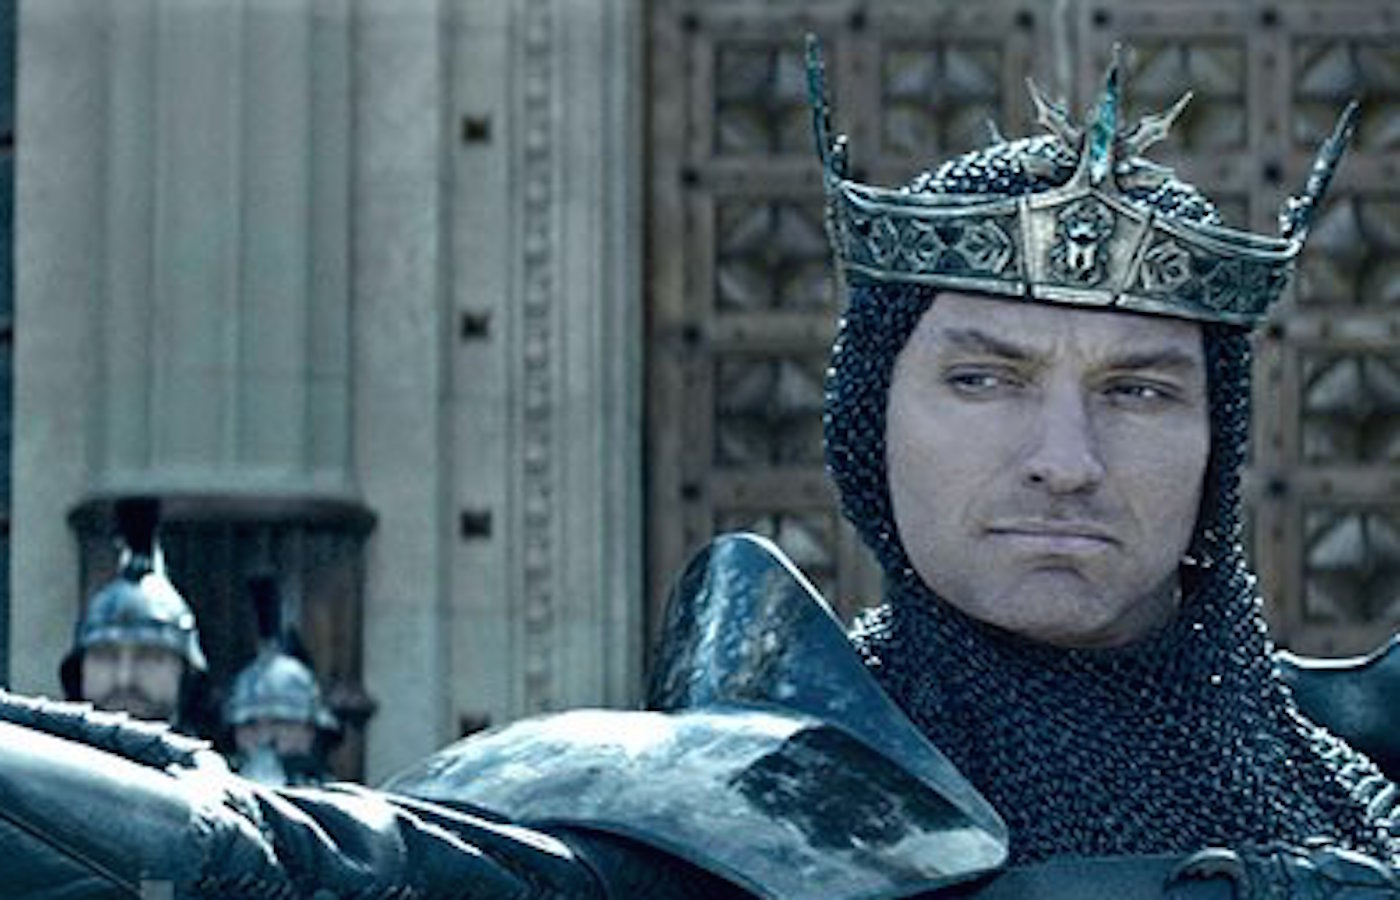 king-arthur-legend-of-the-sword-jude-law.jpg